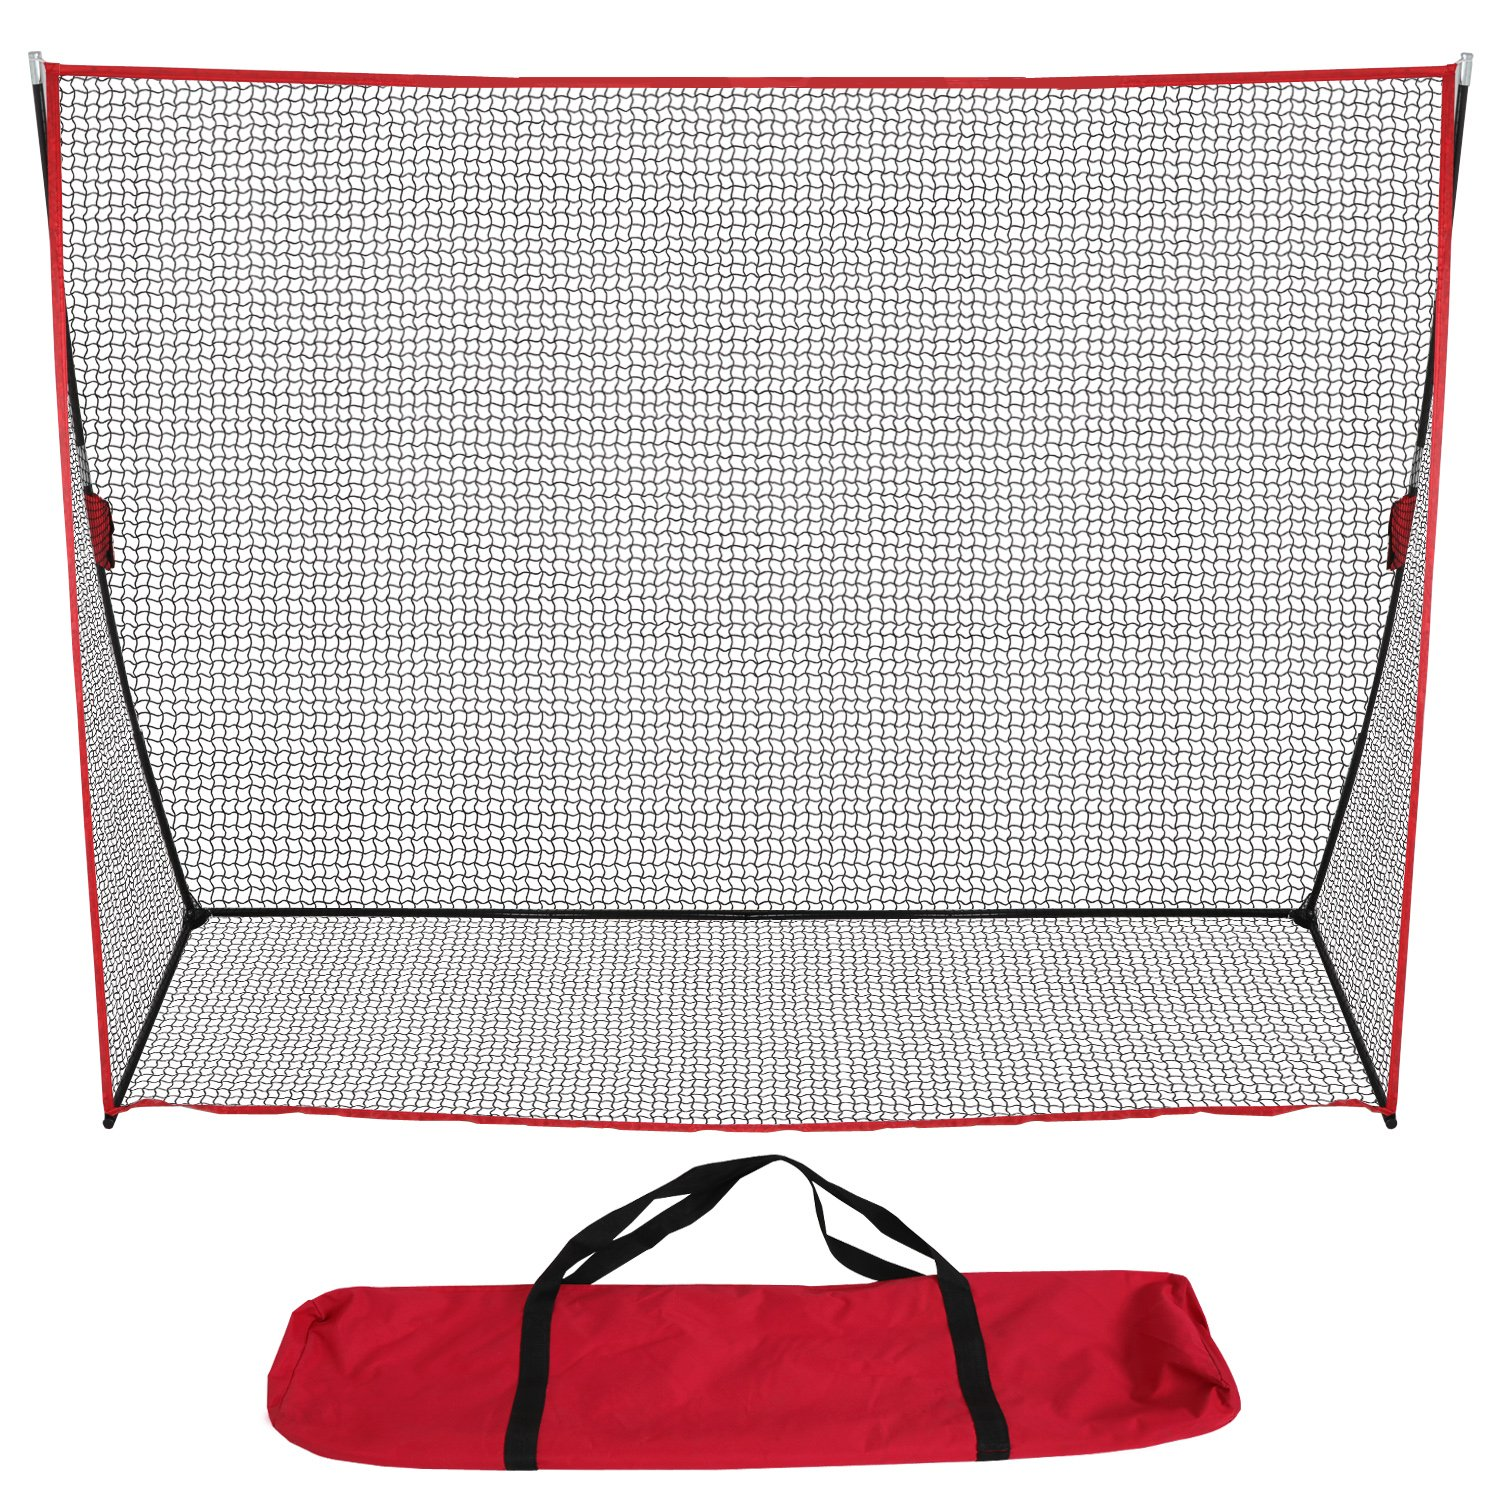 LEMY 10' x 7' Portable Golf Net Hitting Practice Driving Net Golf Bundle Home Swing Training Aids w/ Carry Bag For Indoor Outdoor